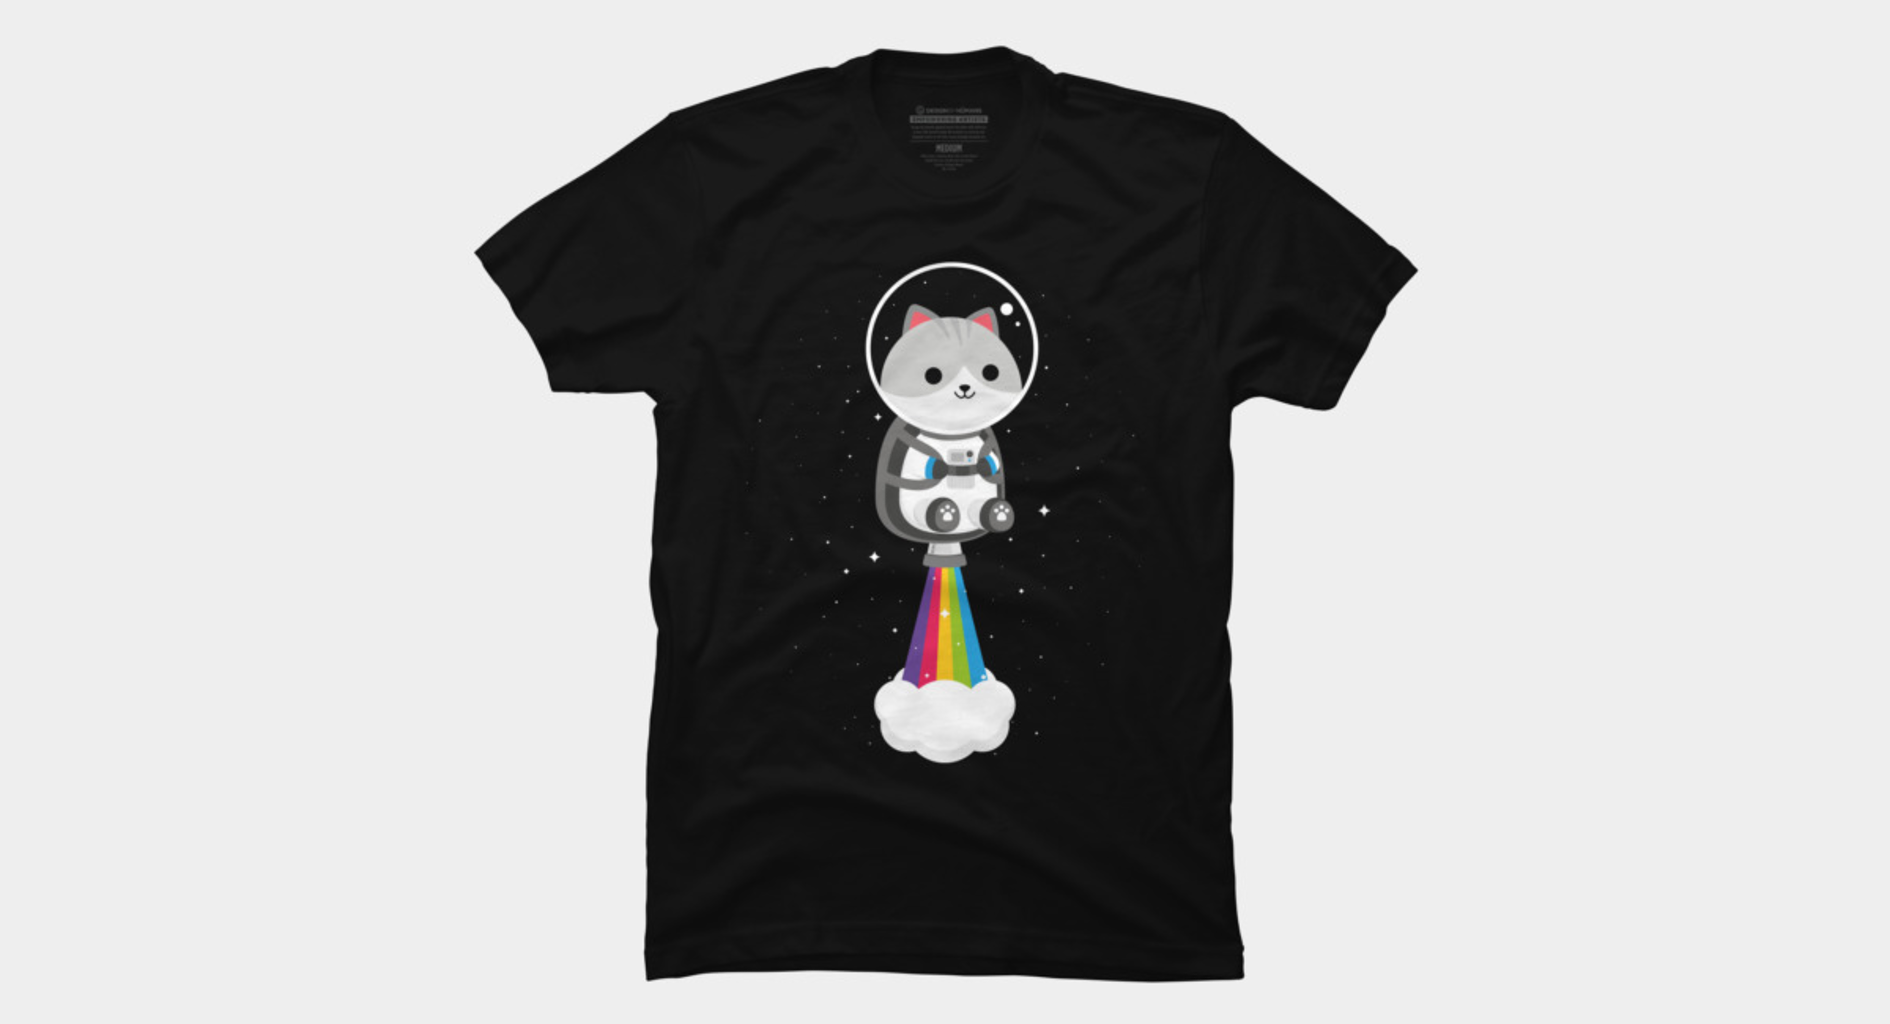 Design by Humans: Space Cat